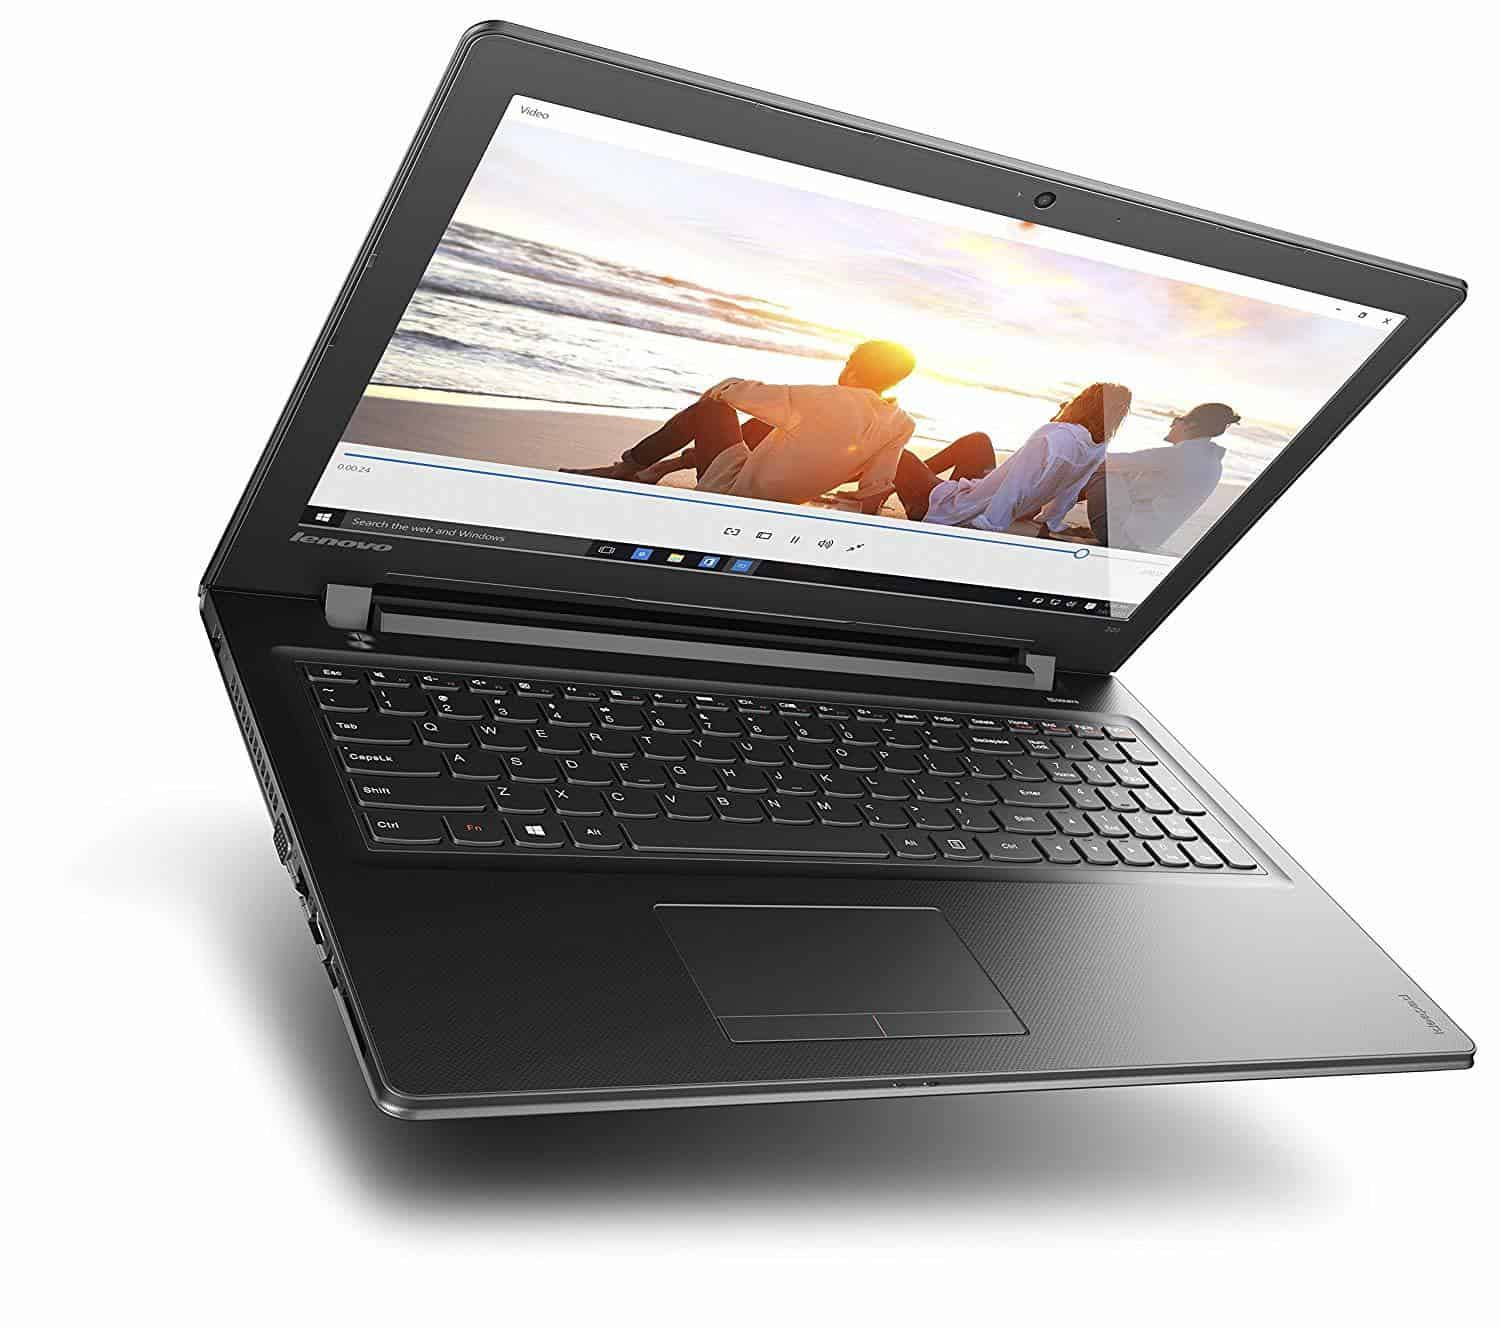 Lenovo Ideapad Review